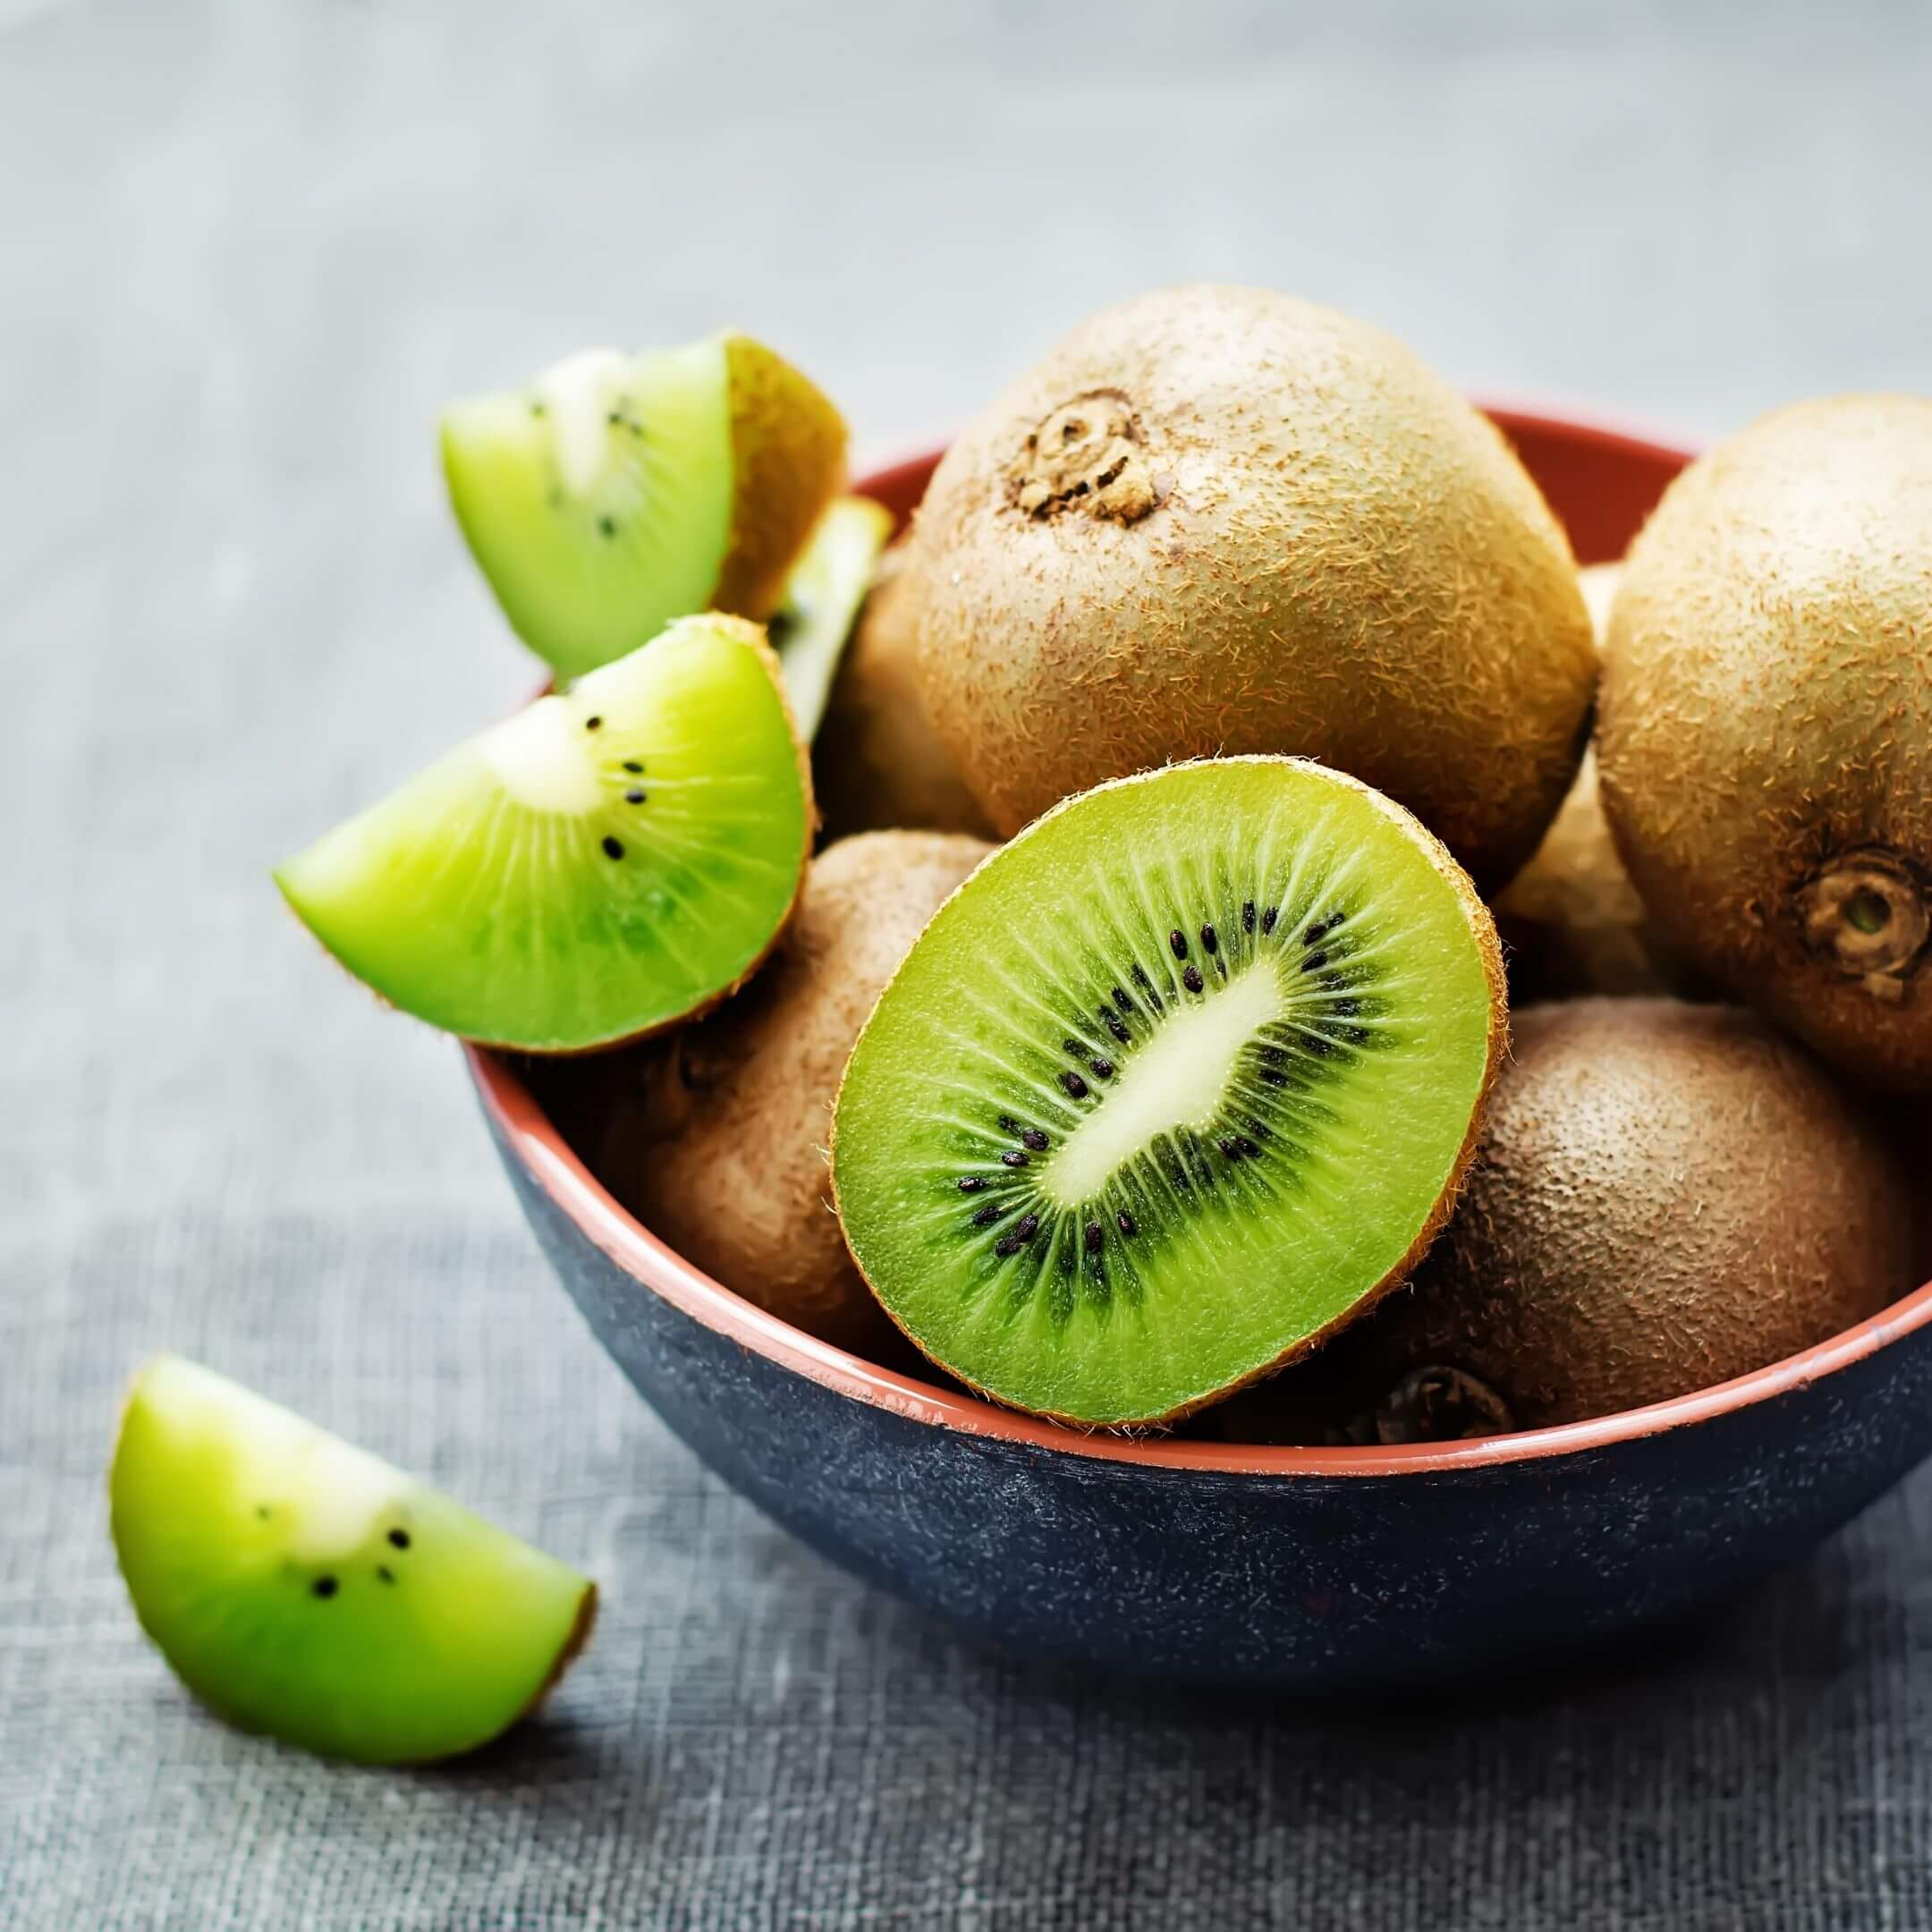 Kiwi and its benefits